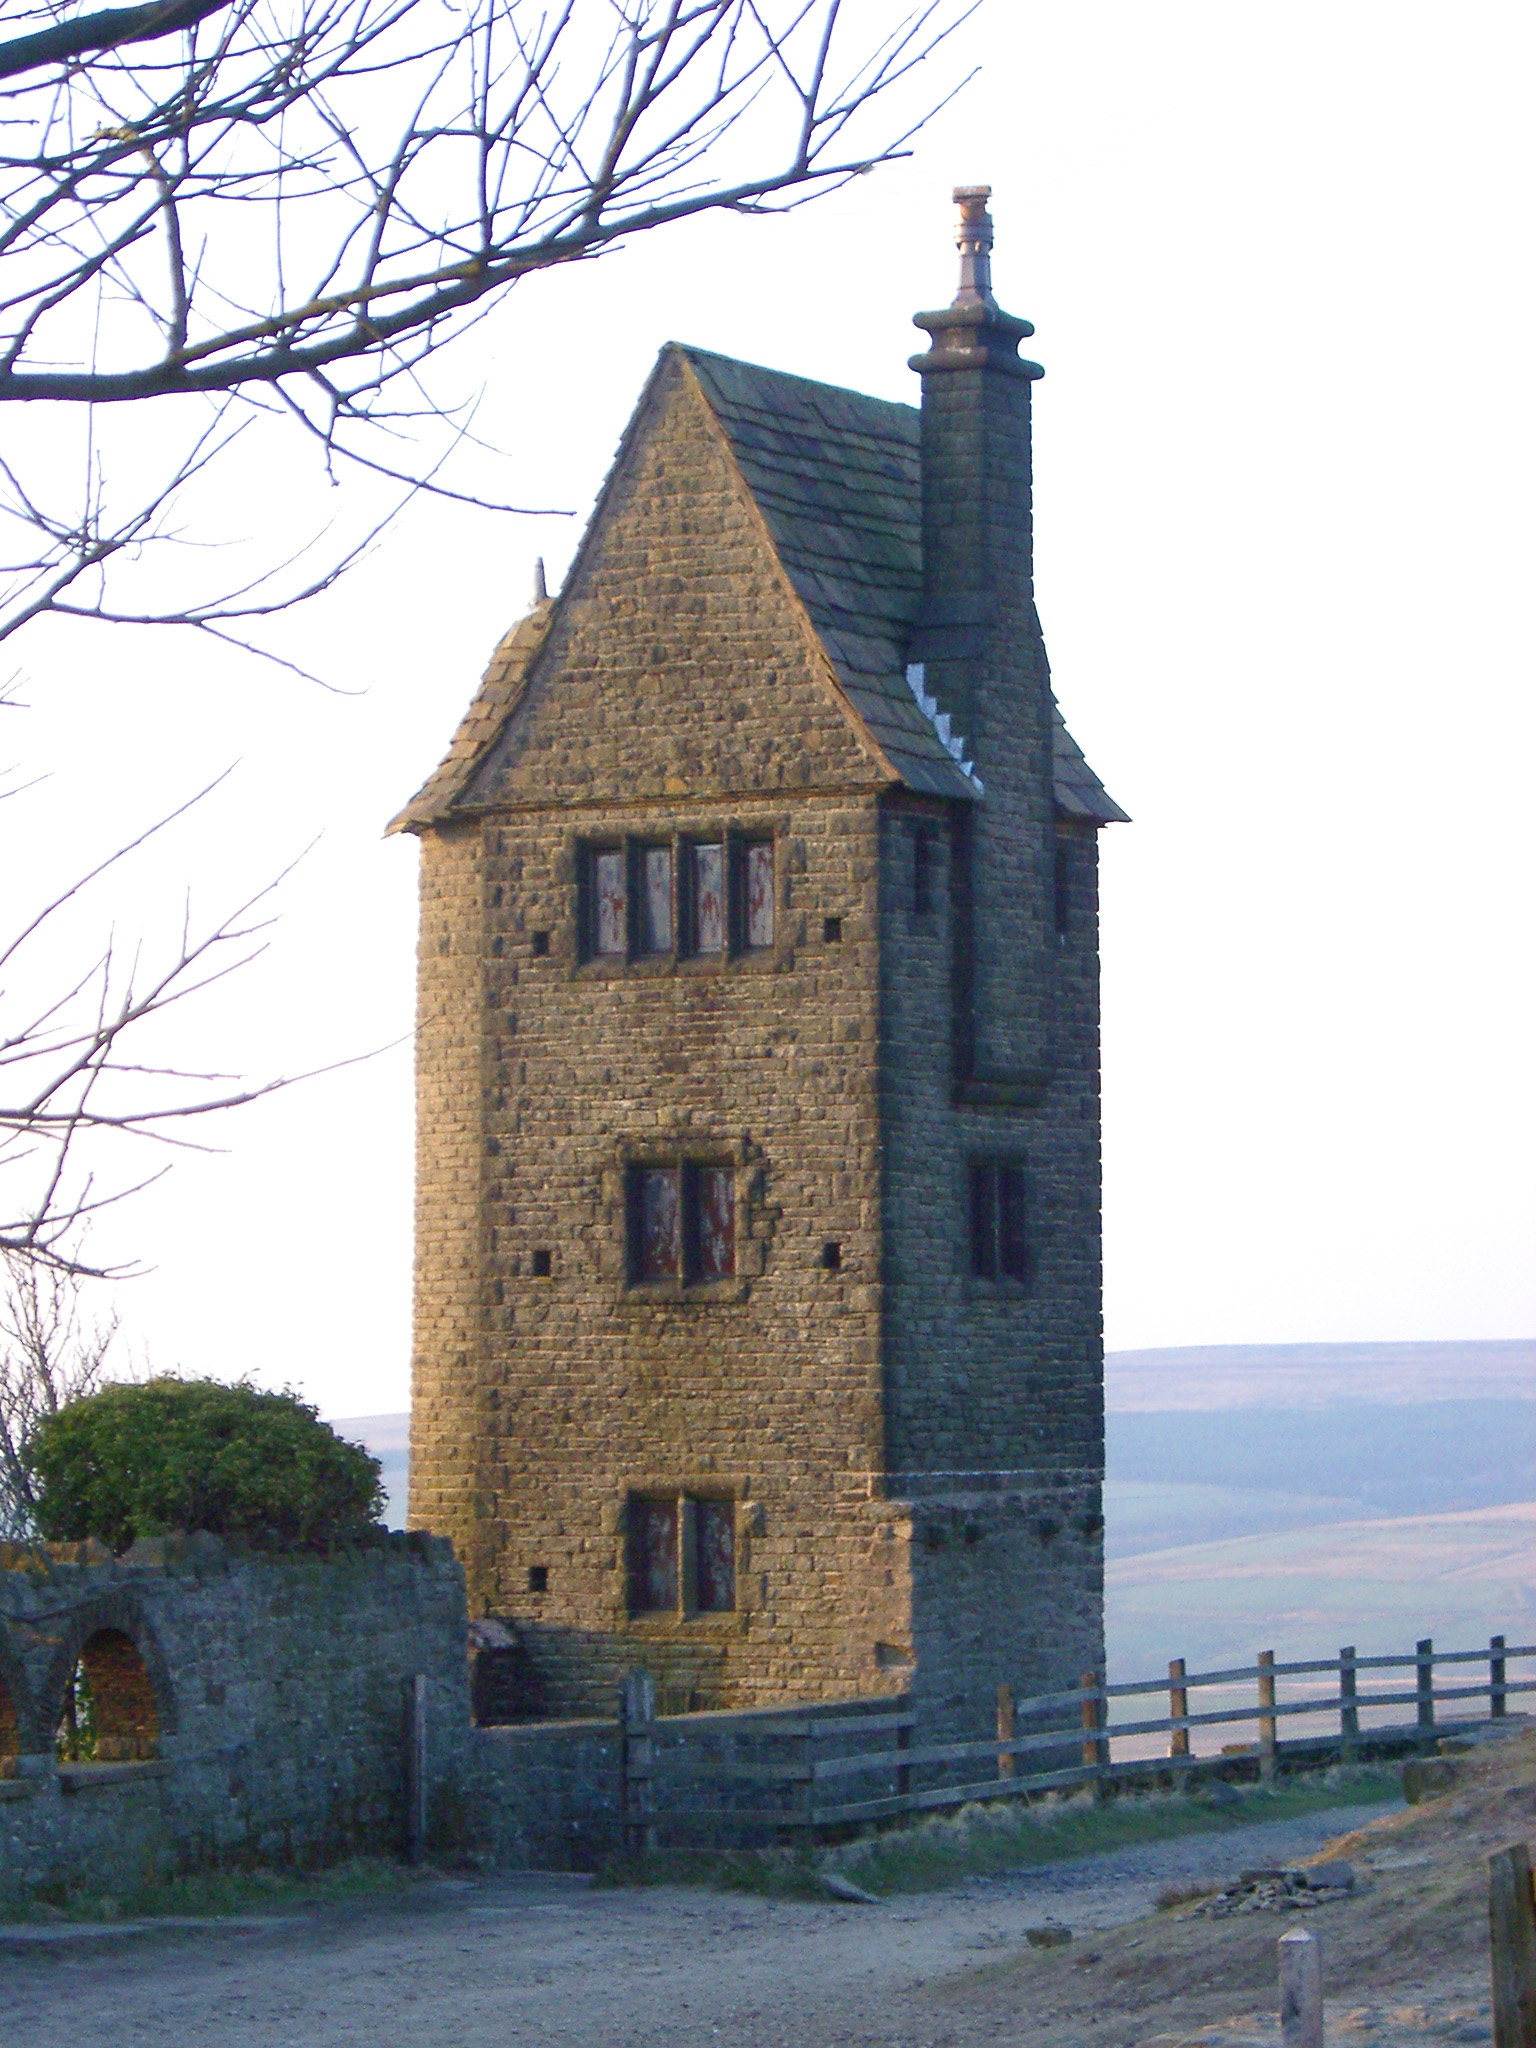 Exterior View of Historic Pigeon Tower Folly in Lever Park, Rivington.